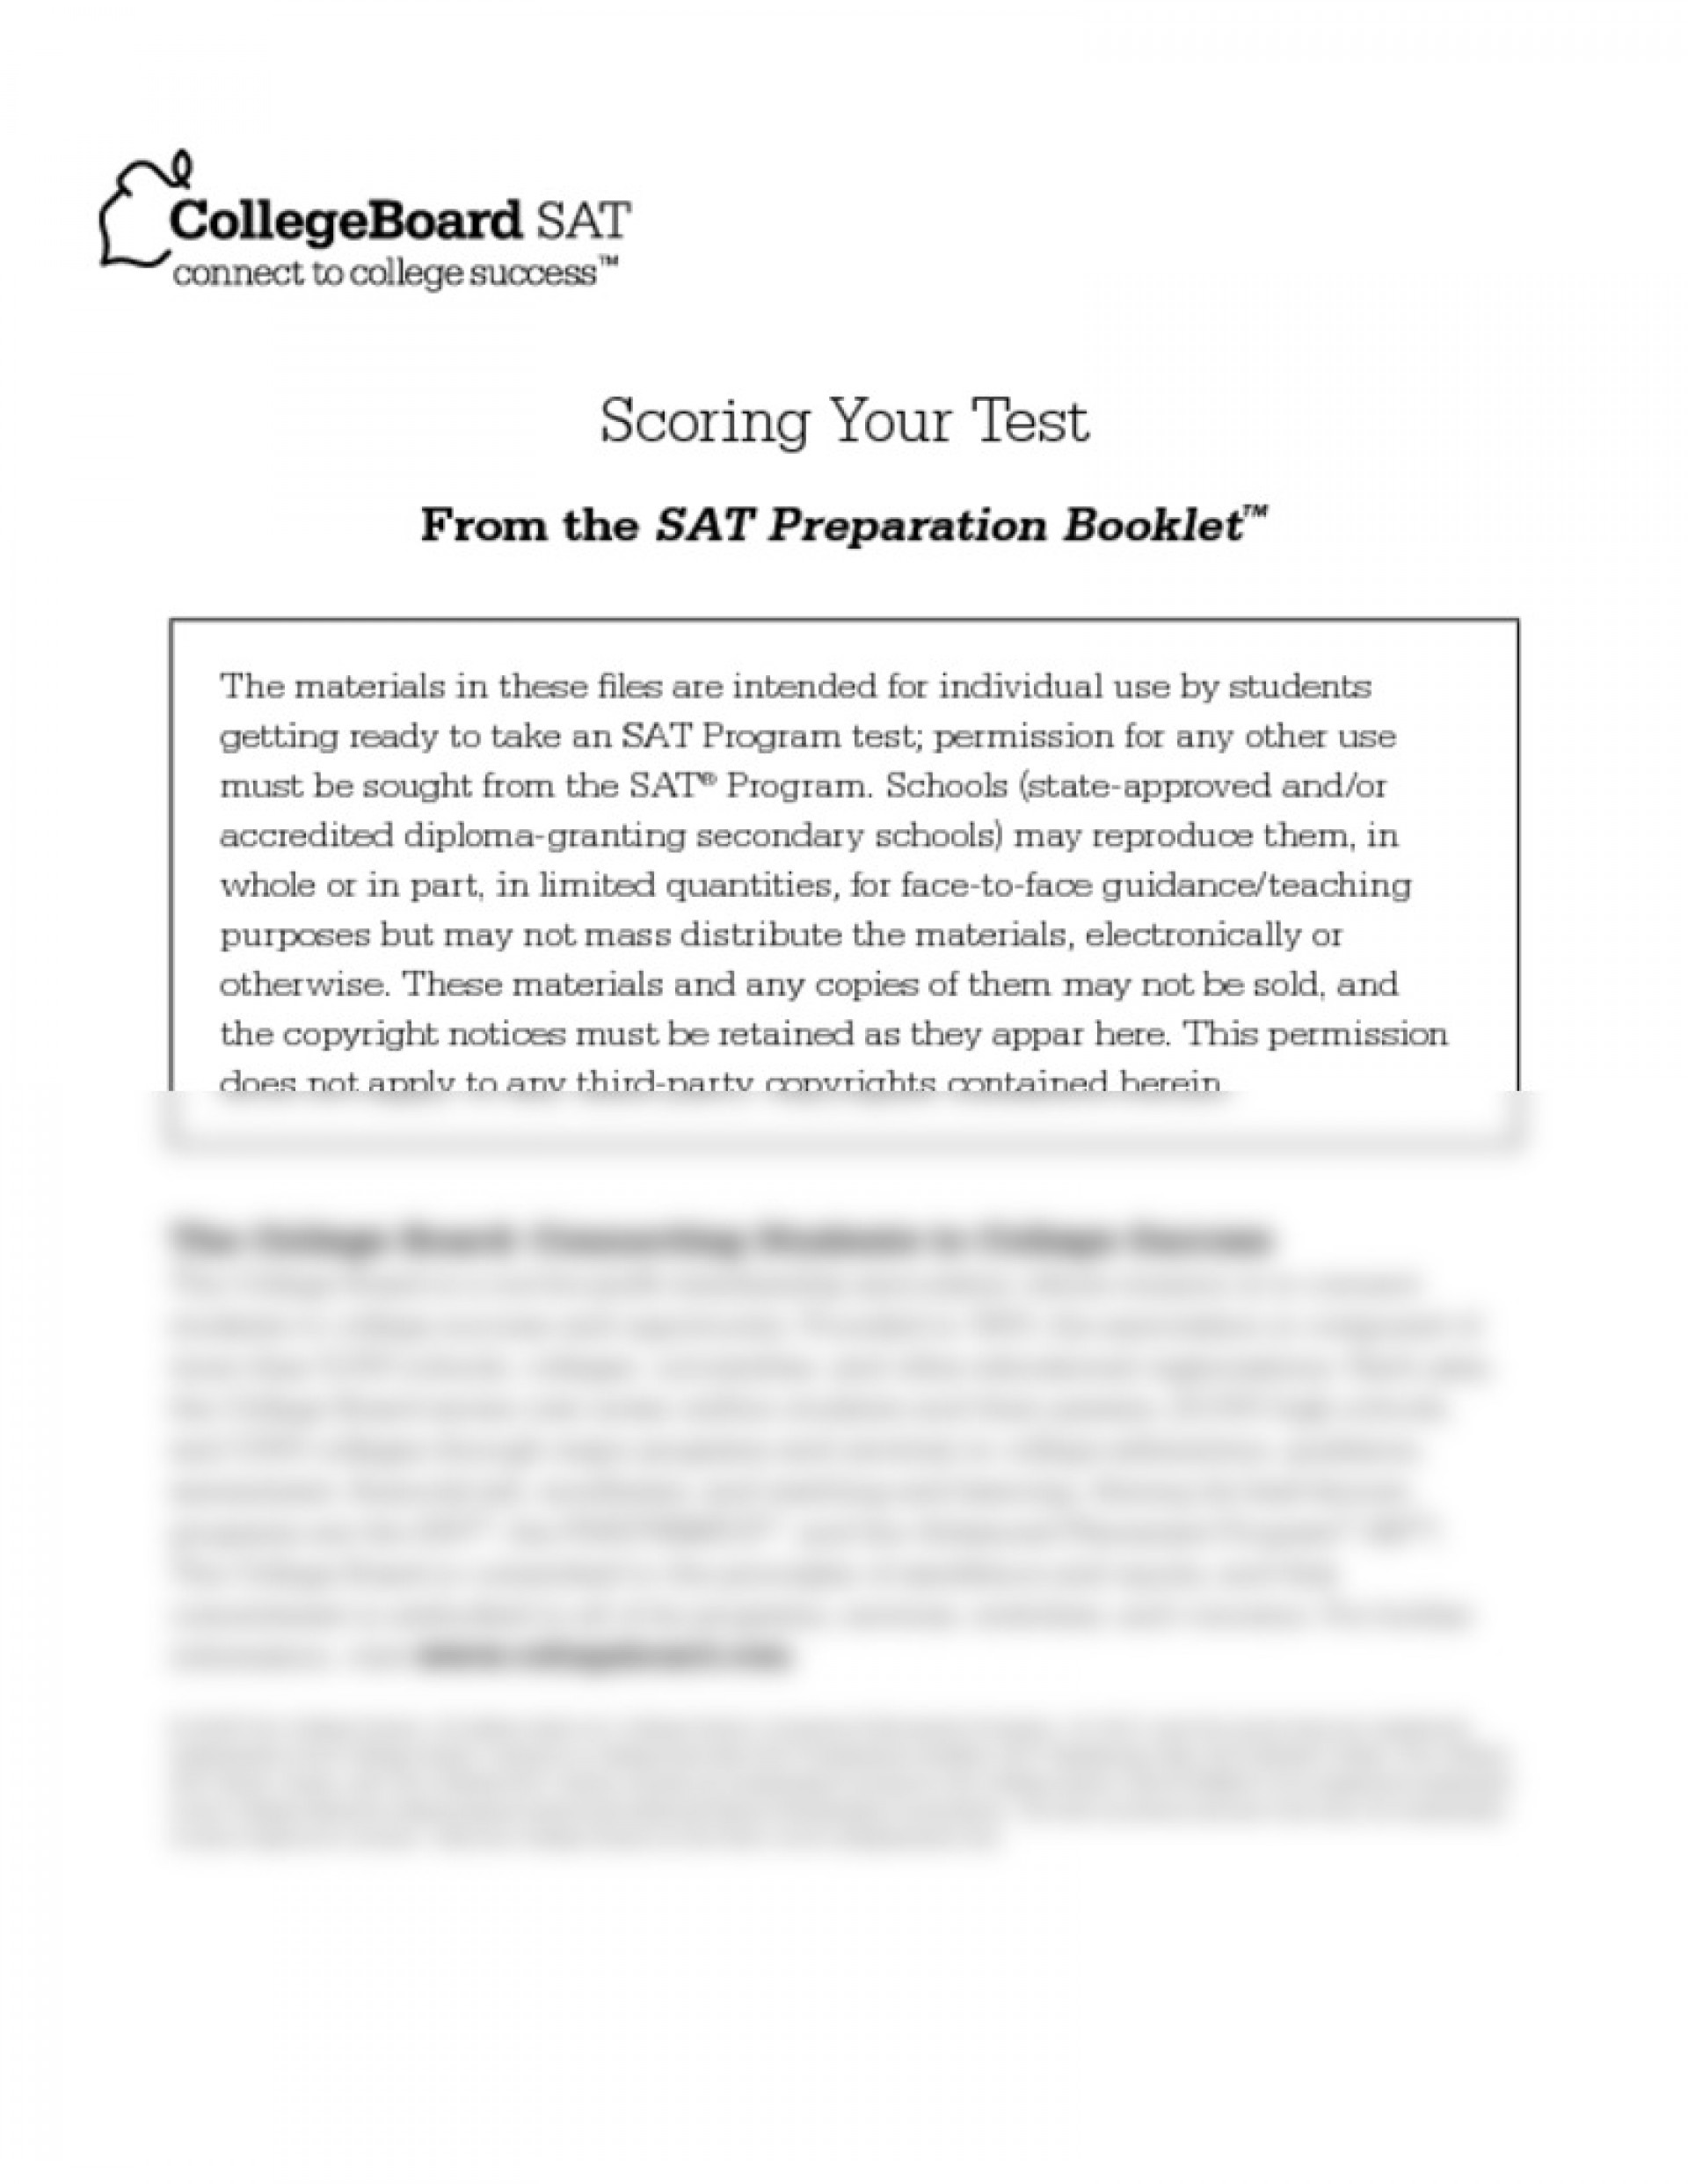 007 Essay Example Preview0 Cheap Top Writing Service Canada Australia Reviews 1920